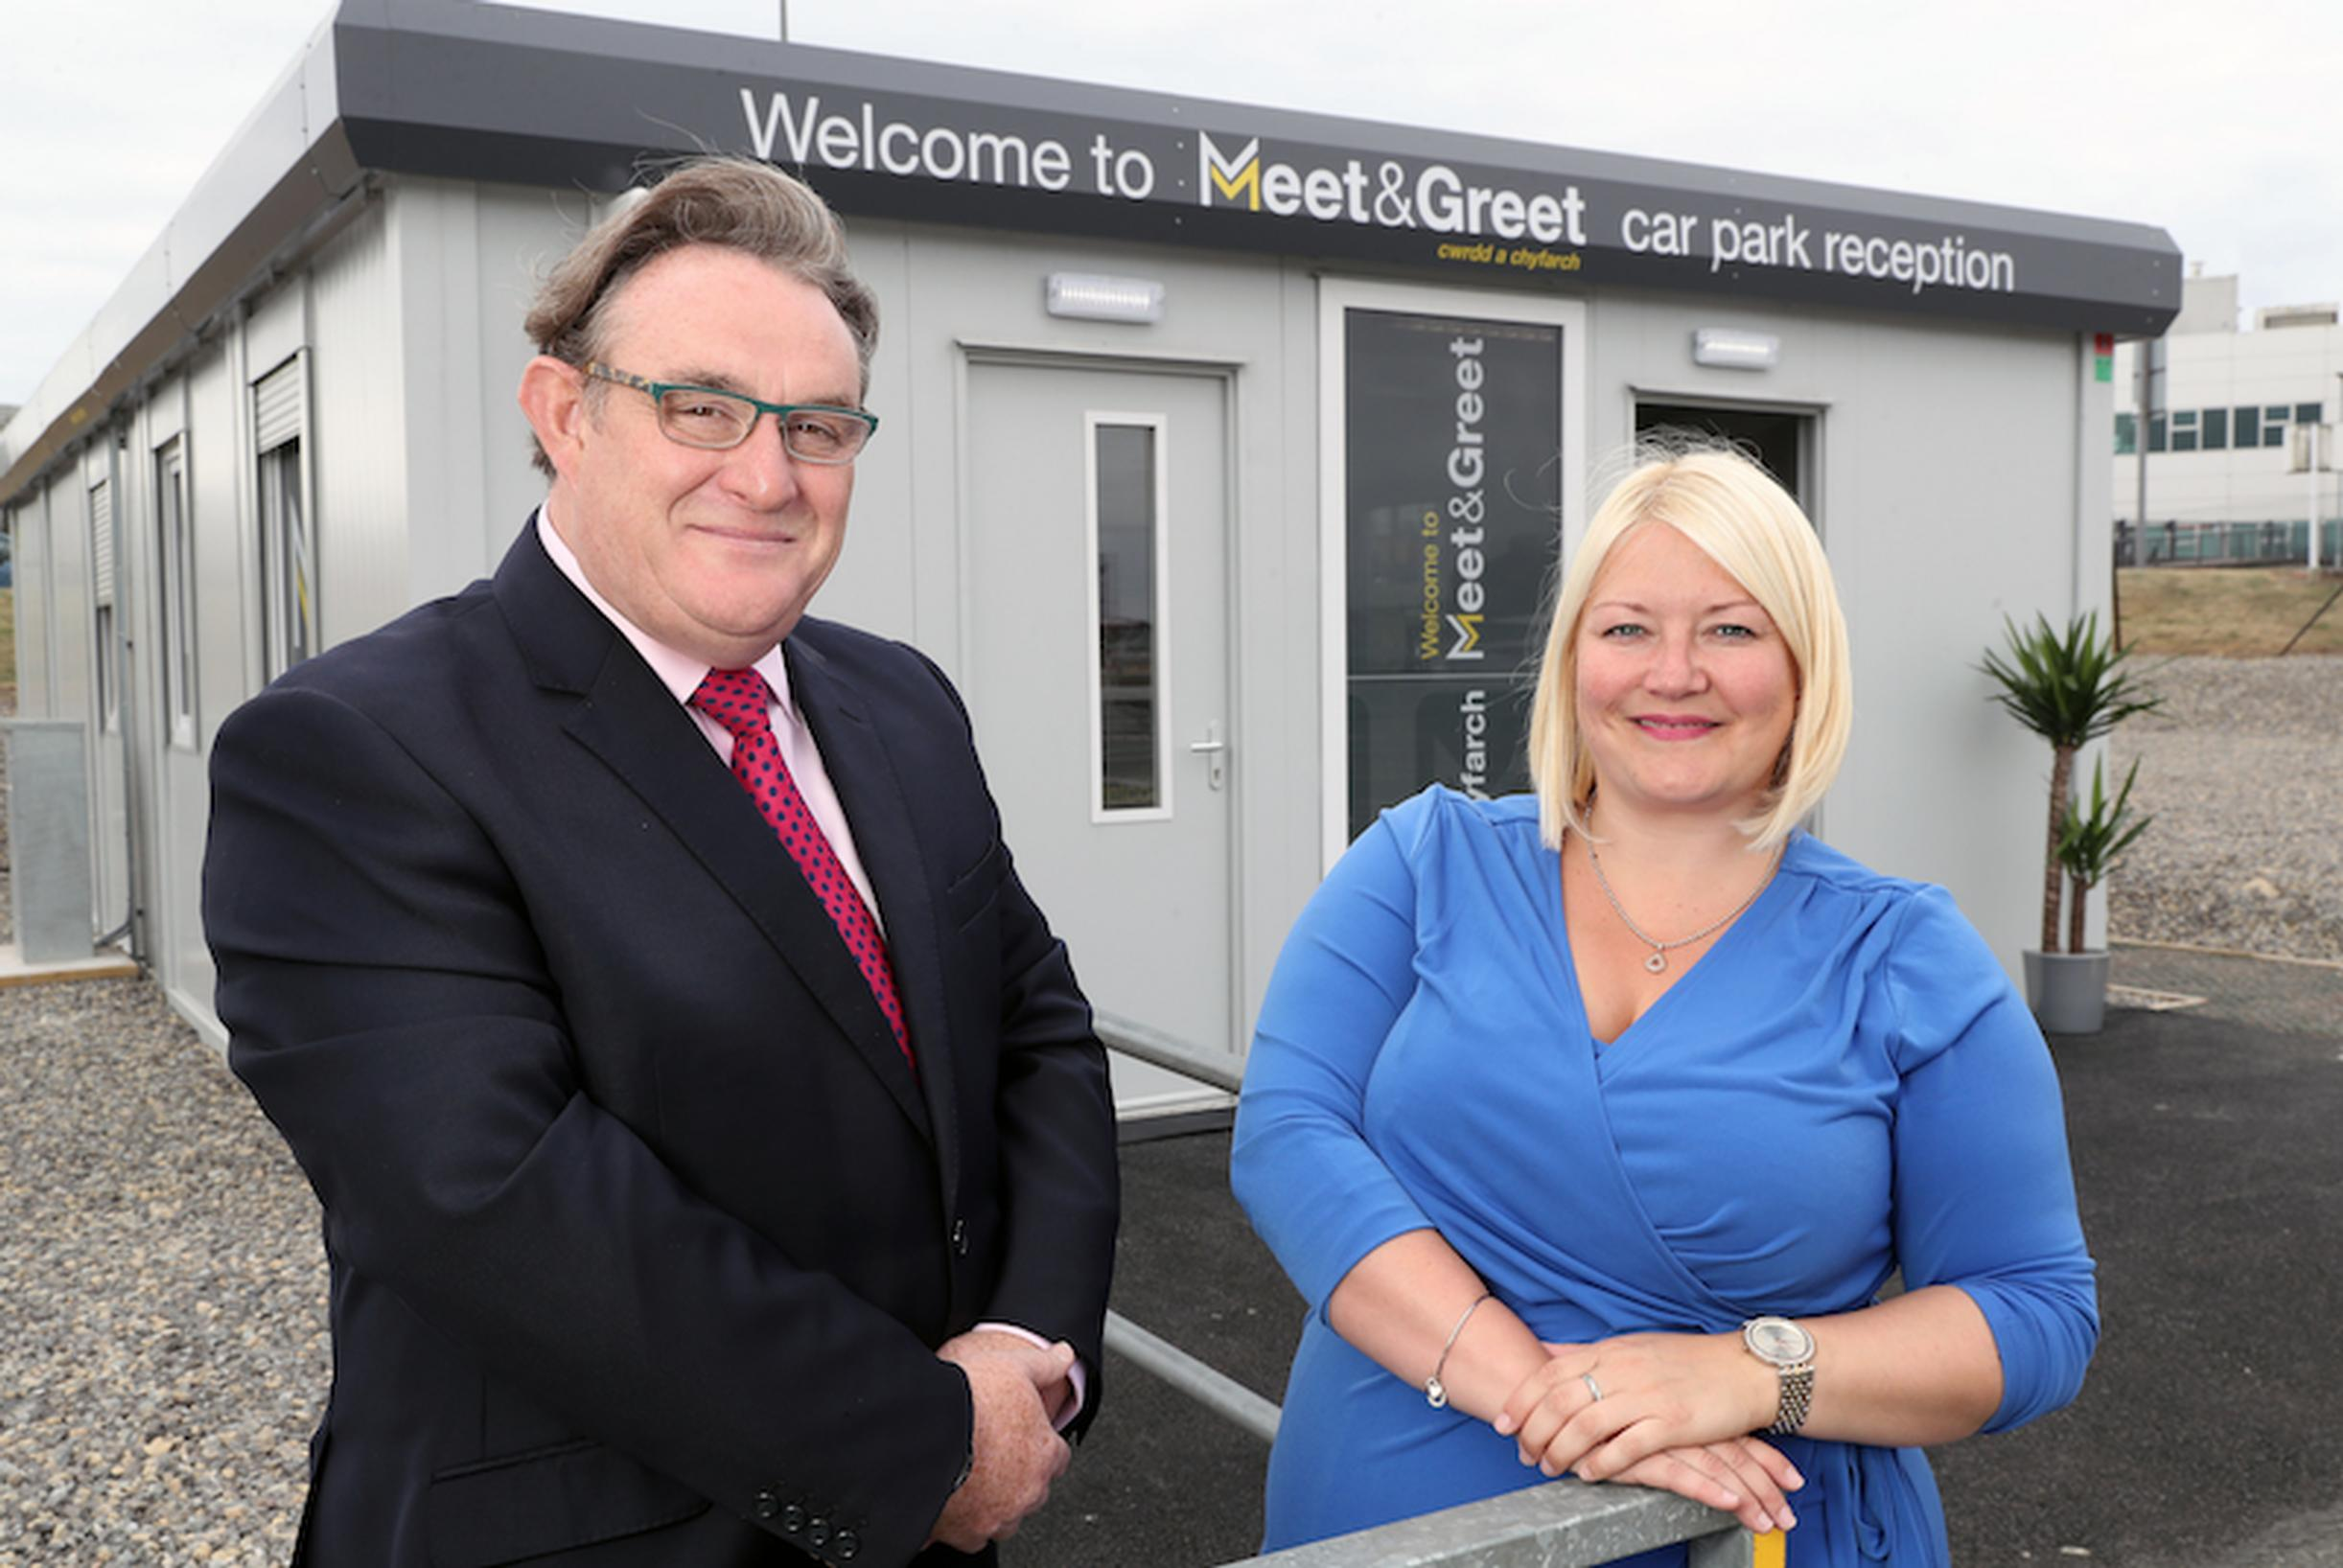 Cardiff Airport Launches Meet Greet Service With Excel Par